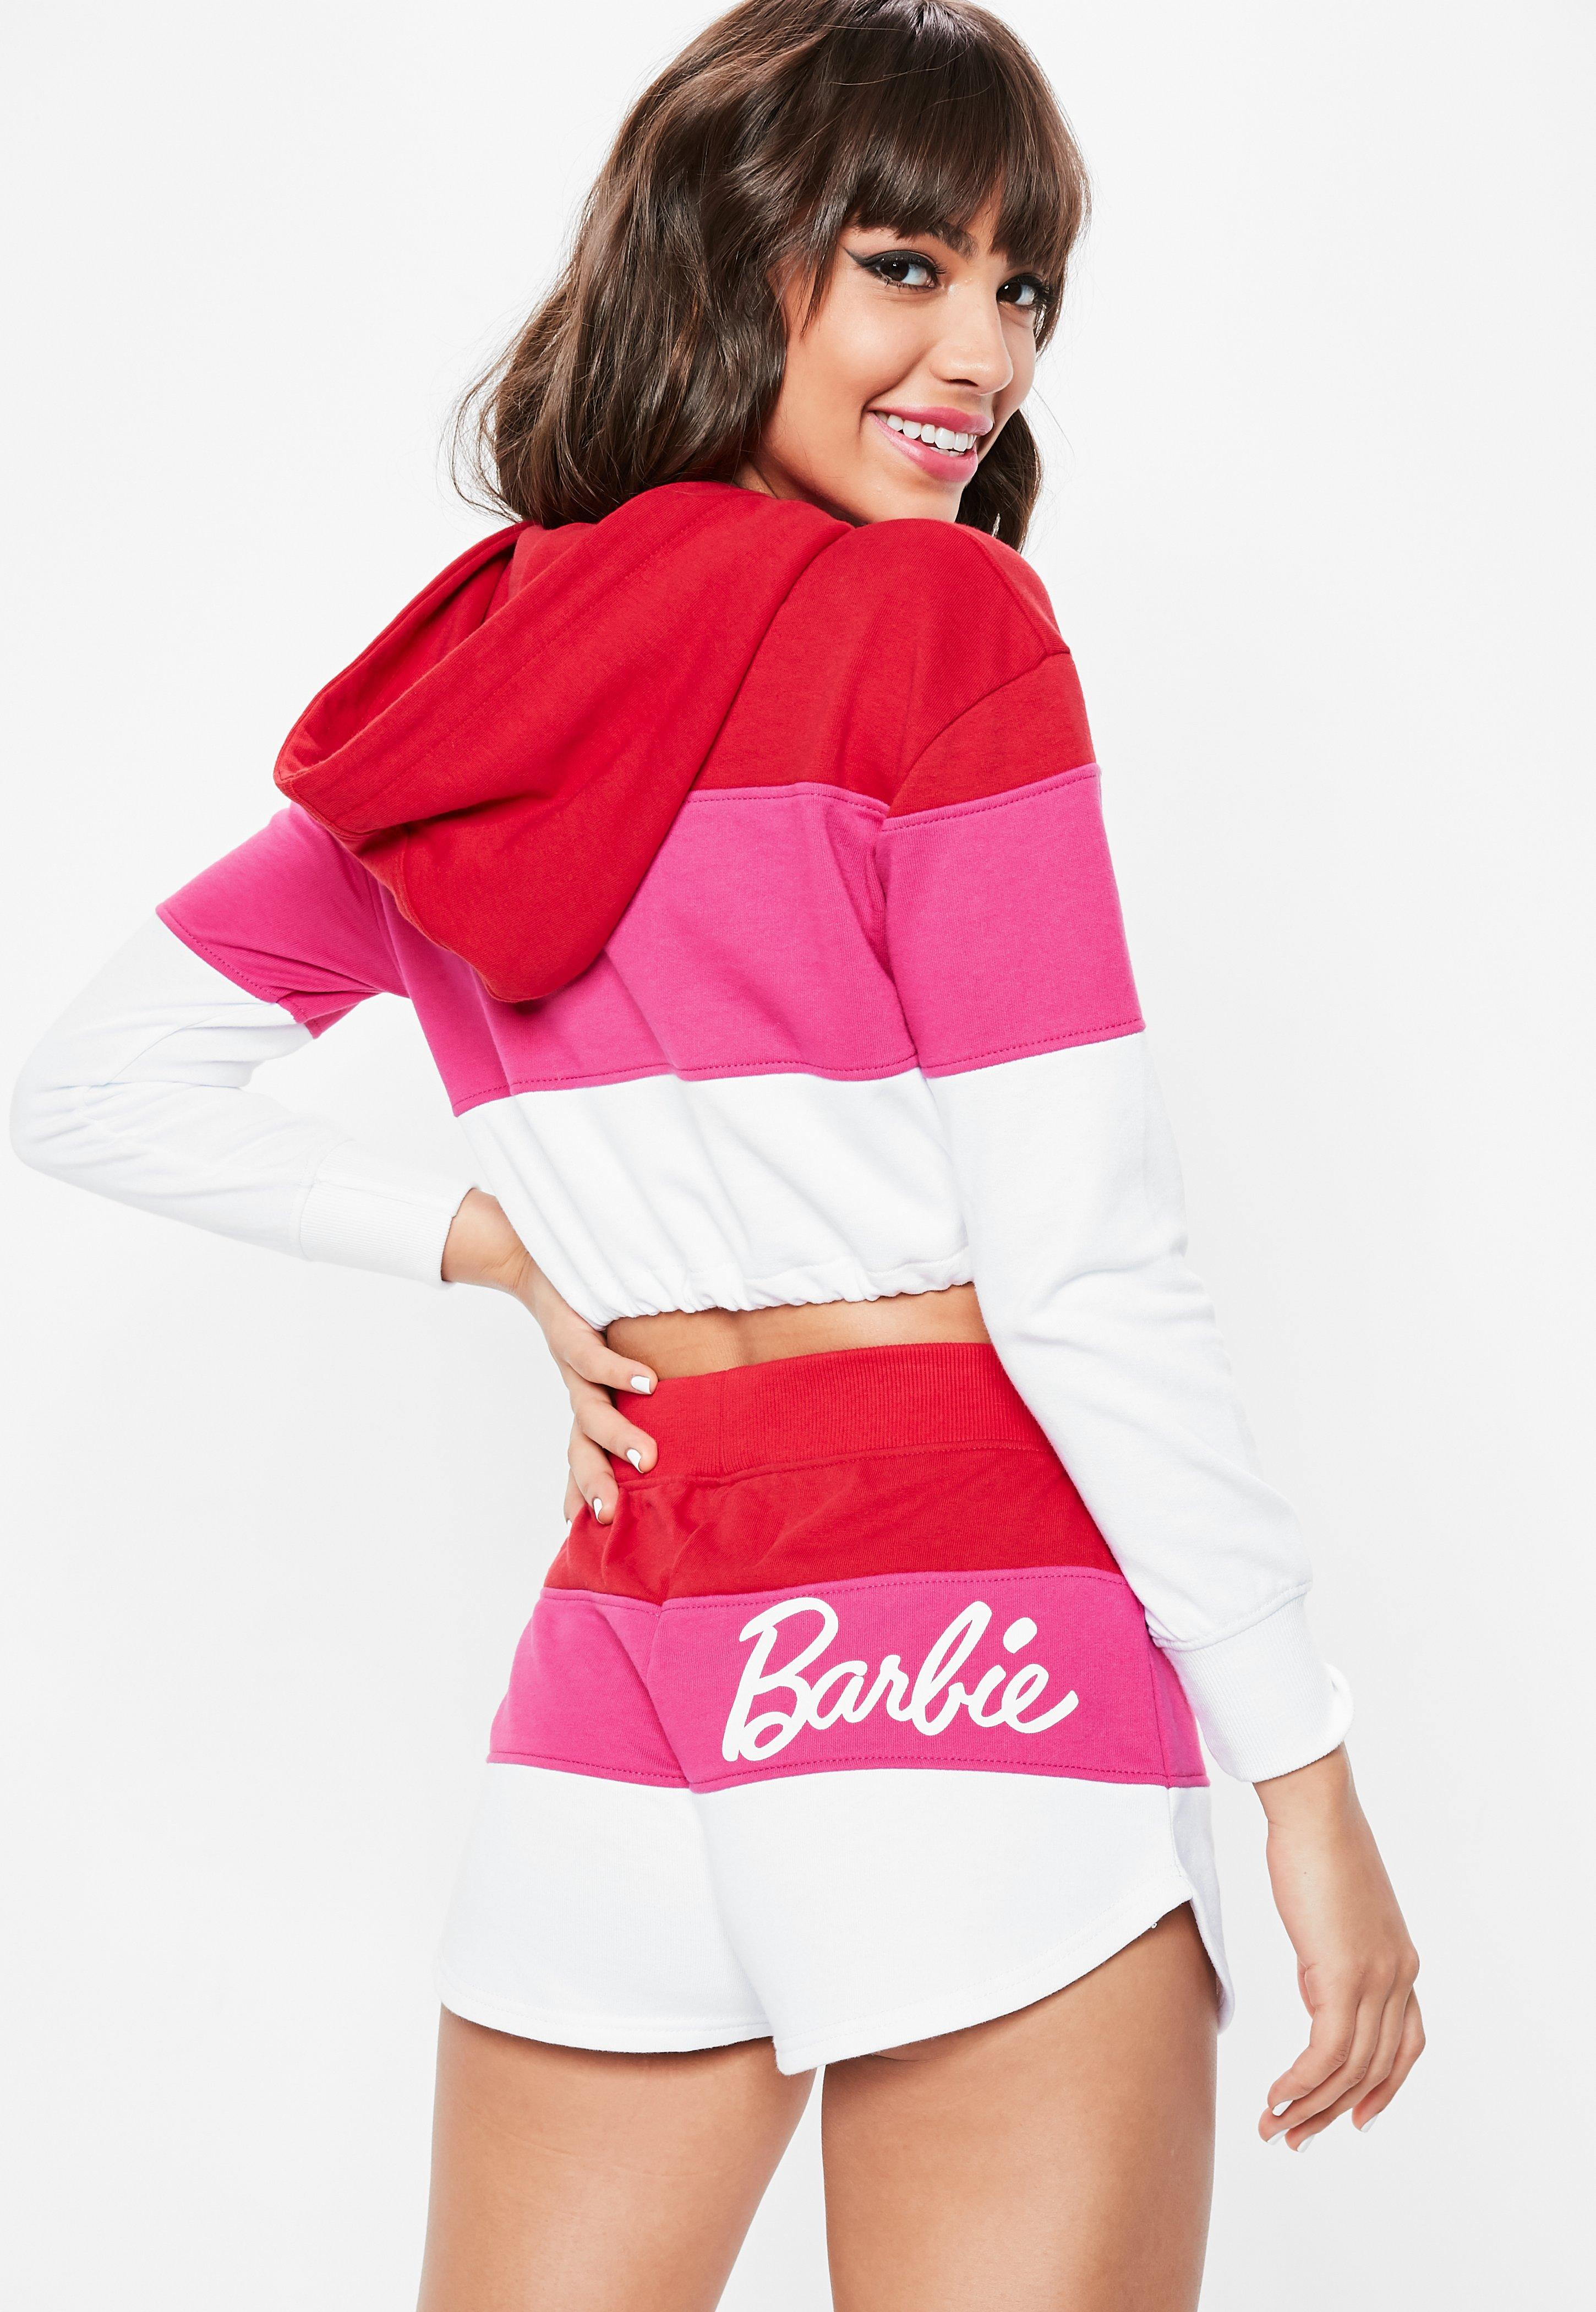 Barbie x Missguided | Colección exclusiva Barbie - Missguided